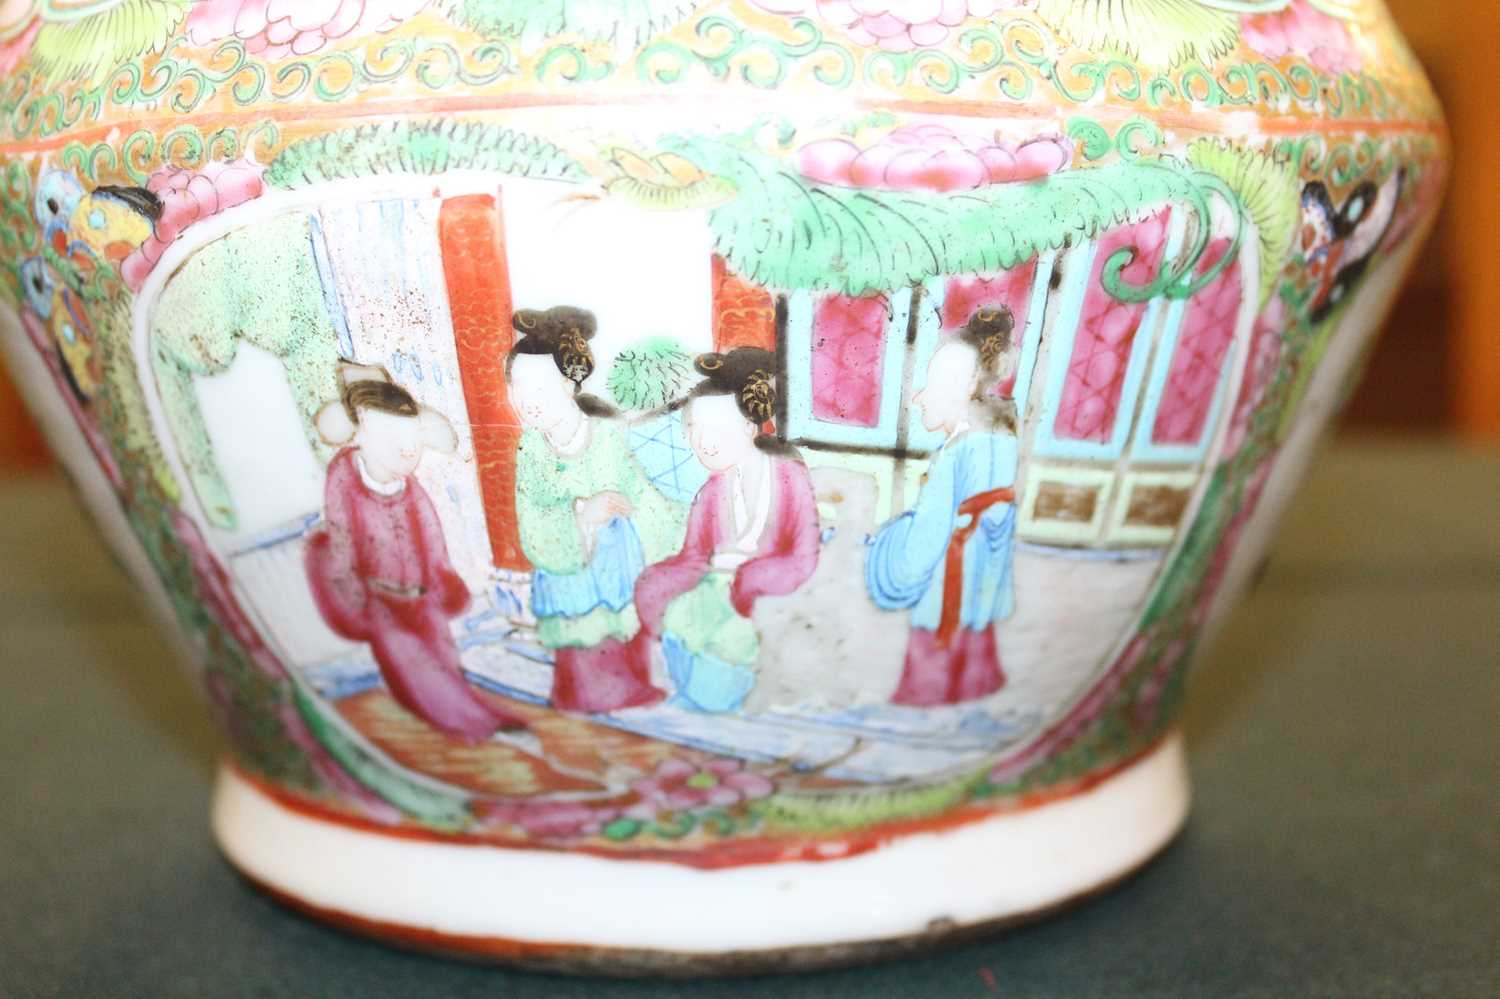 A 19th century Chinese Canton famille rose vase, enamel decorated with ceremonial figure scenes - Image 9 of 18